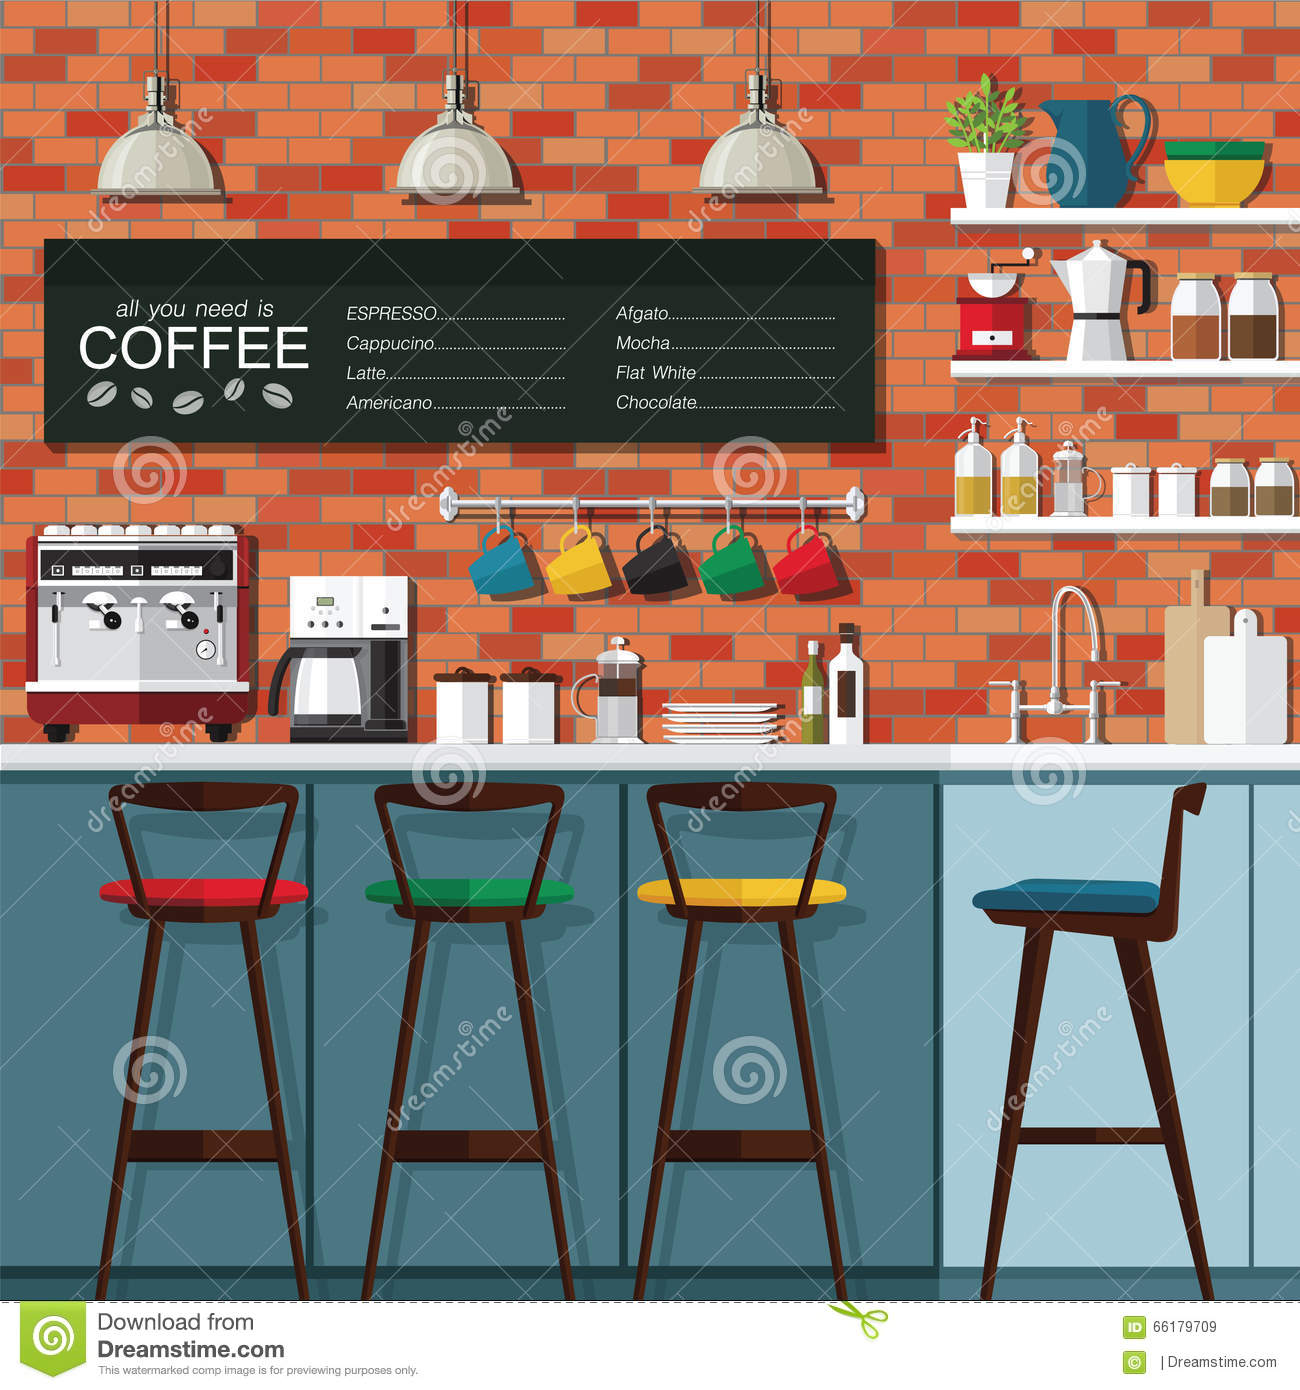 Royalty-Free Vector. Download Coffee Bar Design ...